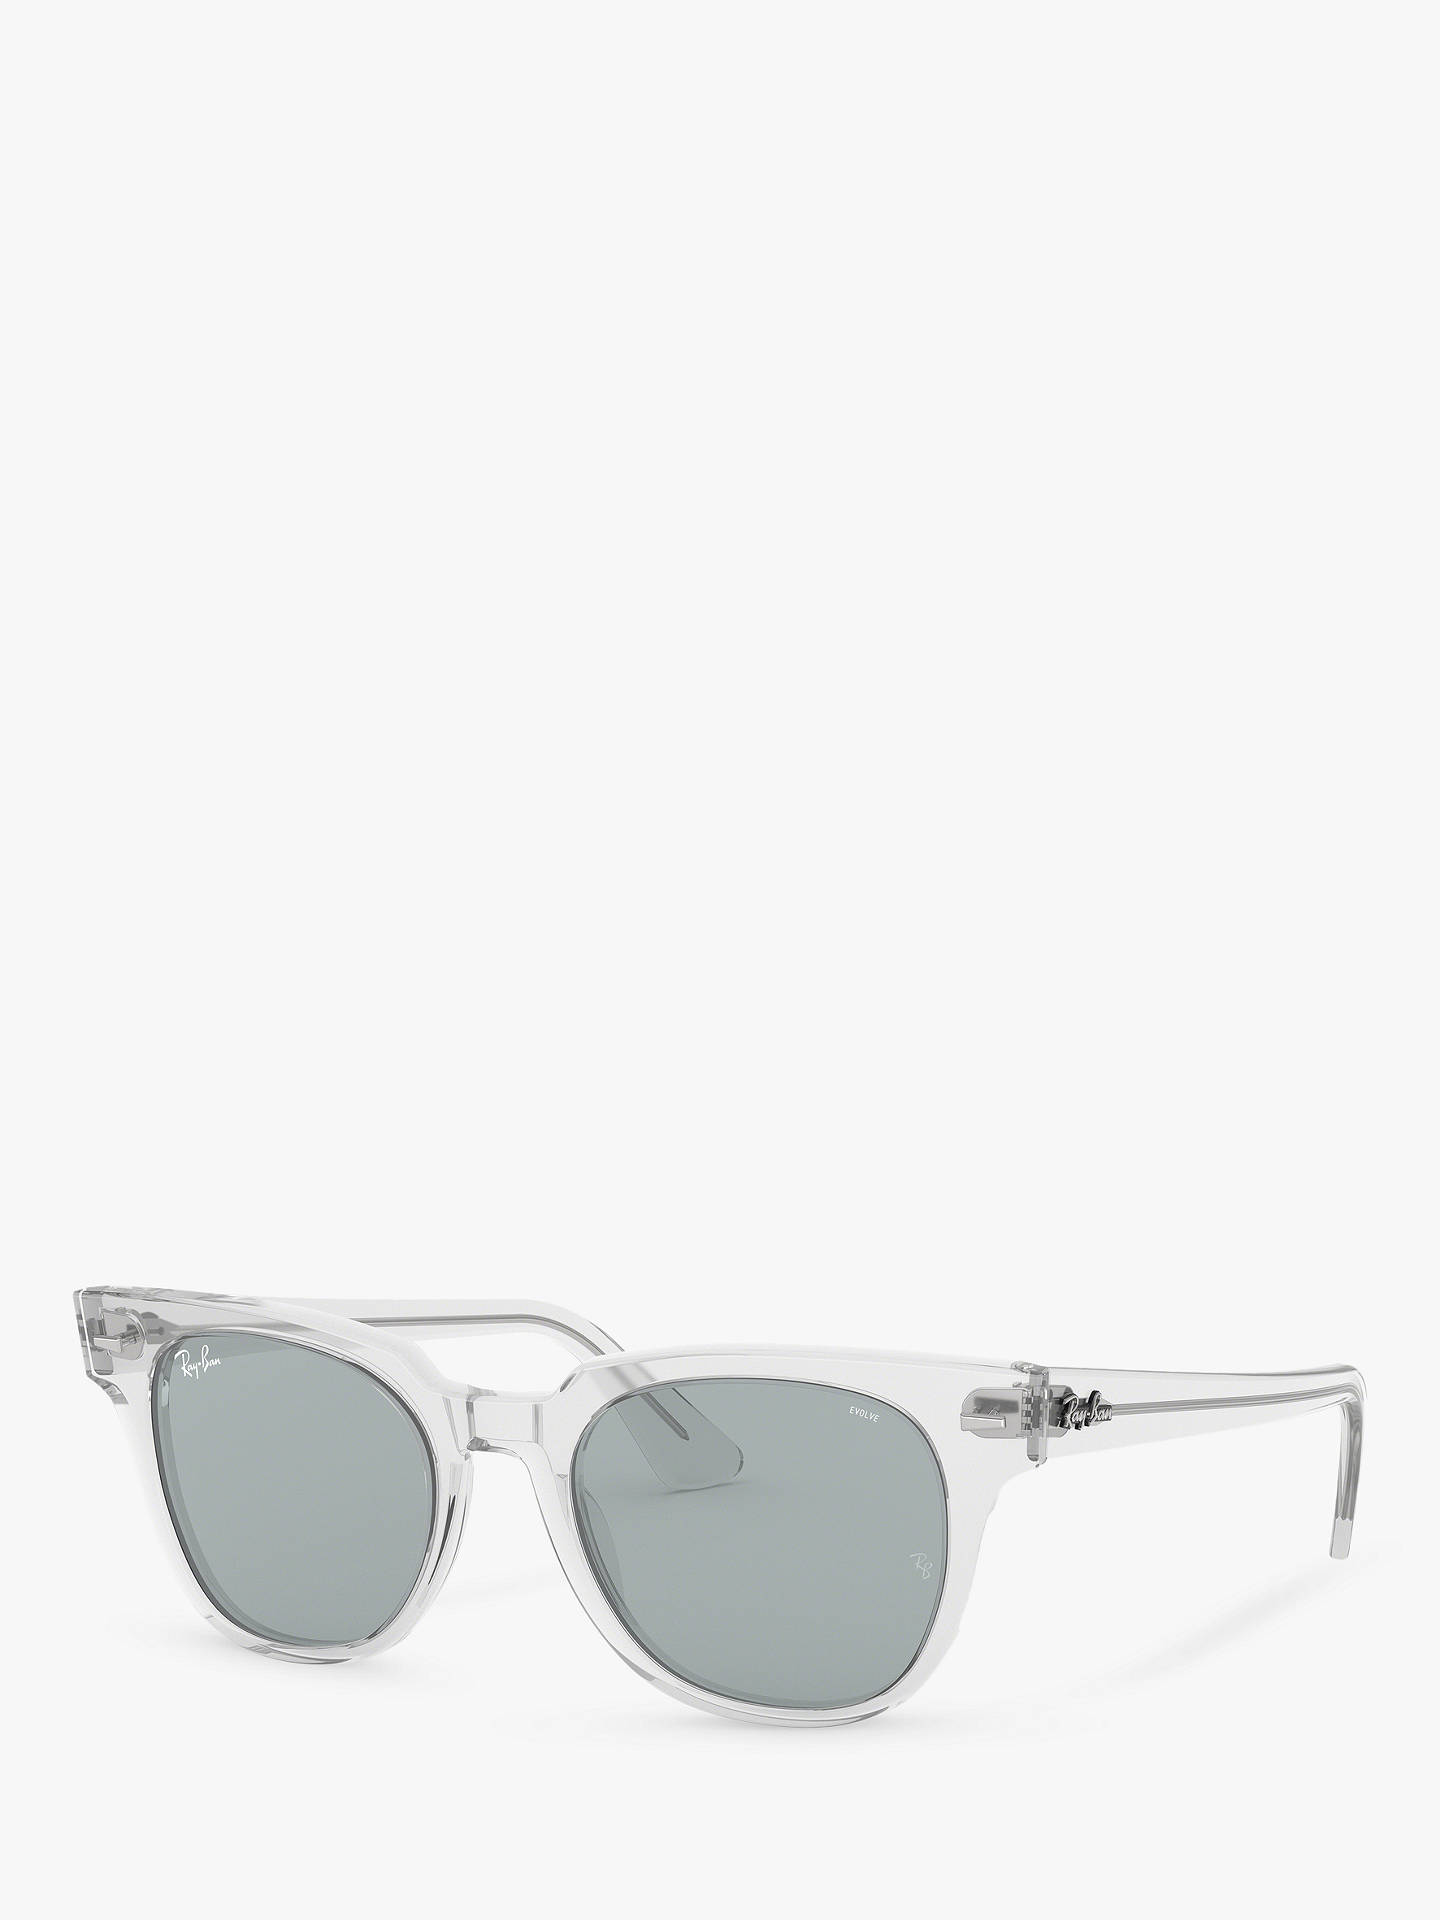 ce5a169fd6b7 Ray-Ban RB2168 Unisex Square Sunglasses at John Lewis   Partners